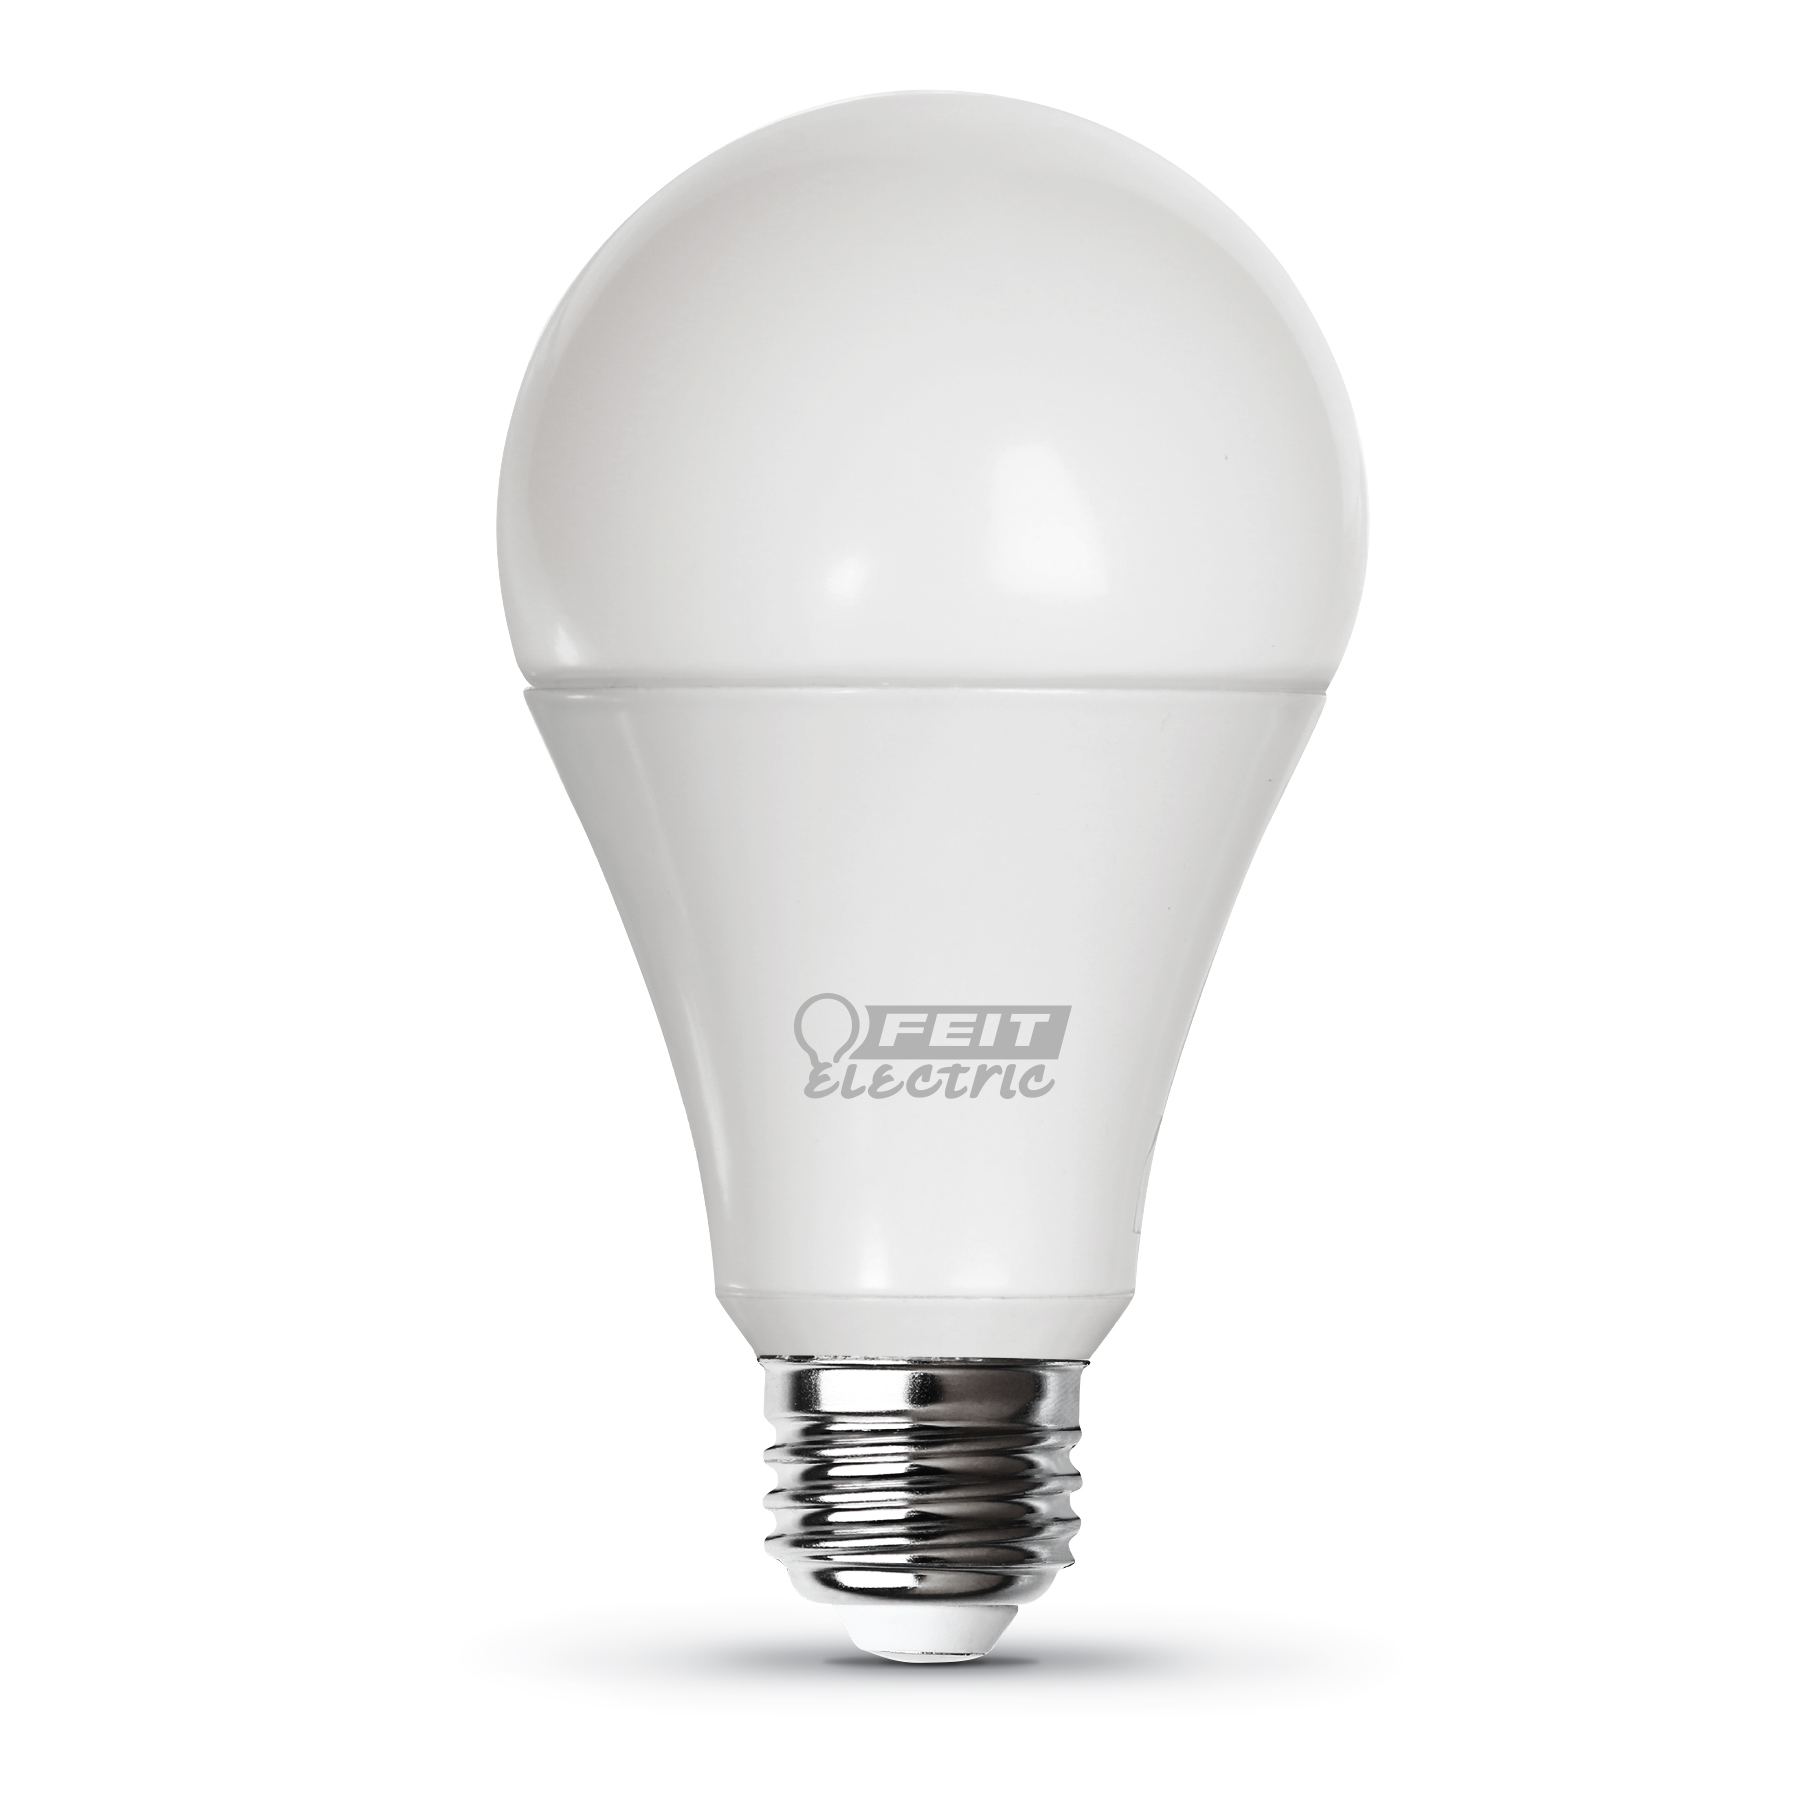 150 W Equivalent Warm White Dimmable High Lumen LED Light Bulb